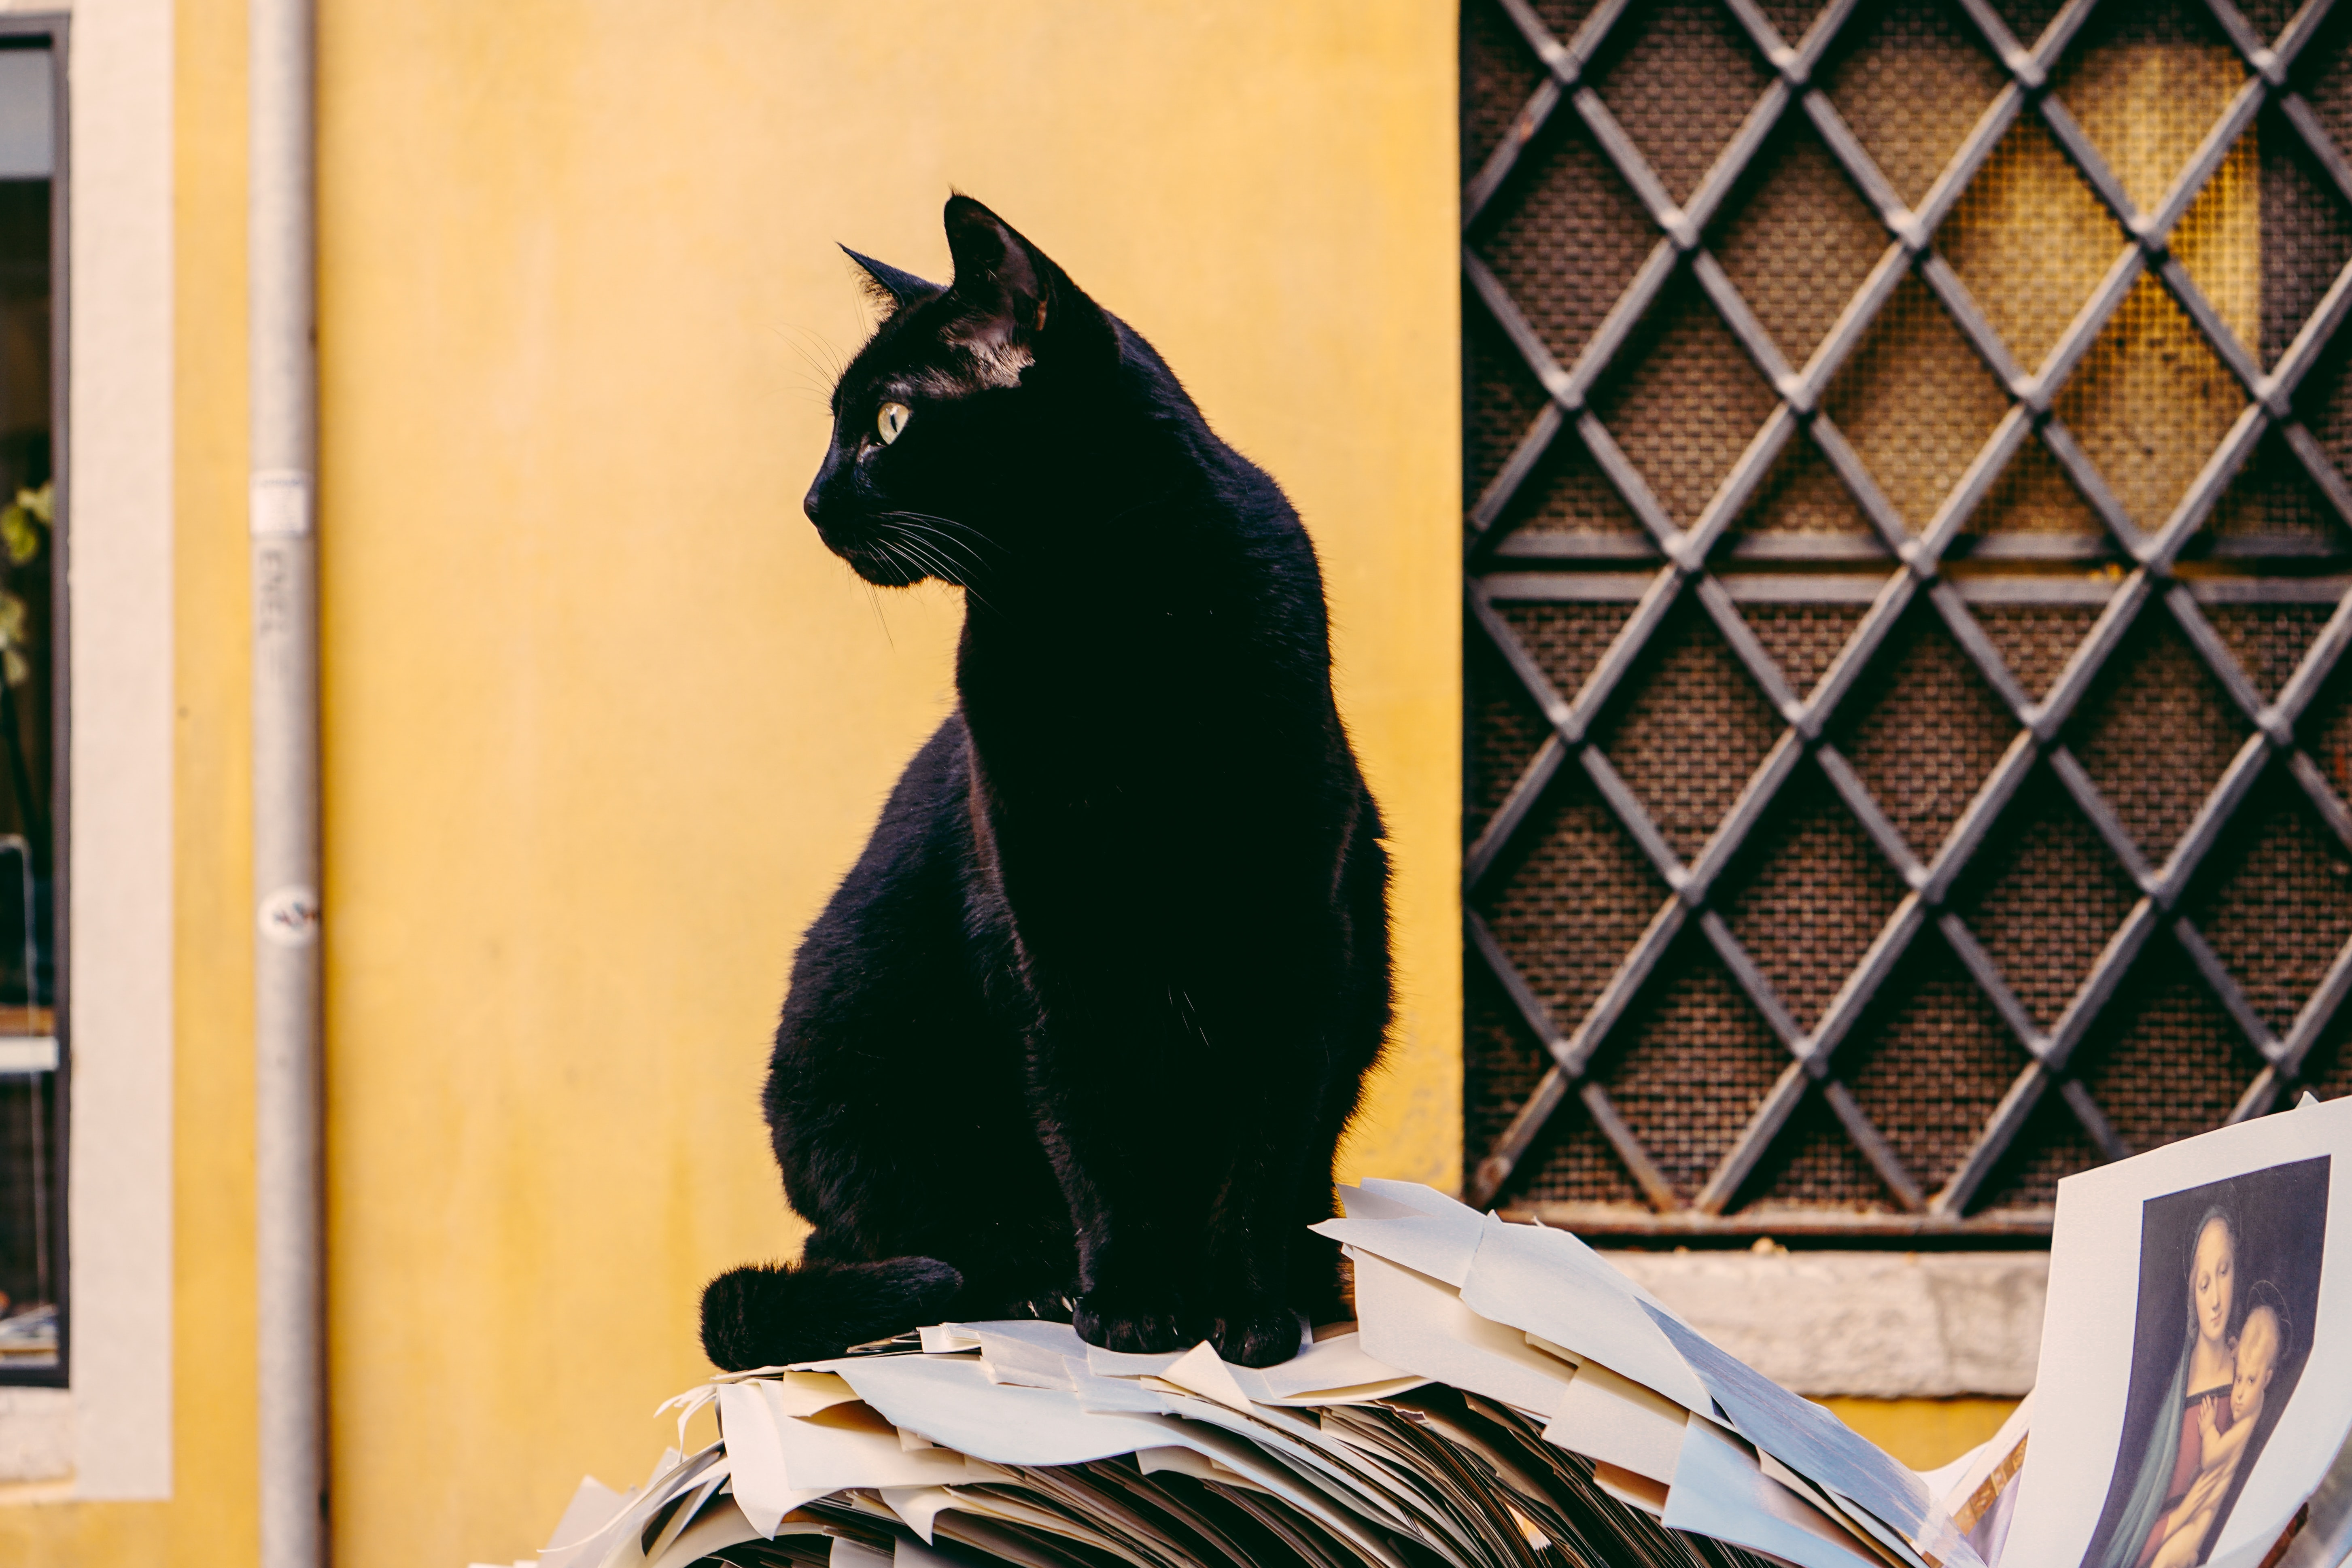 Black cat sitting in front of yellow house walk on discarded papers in Venice